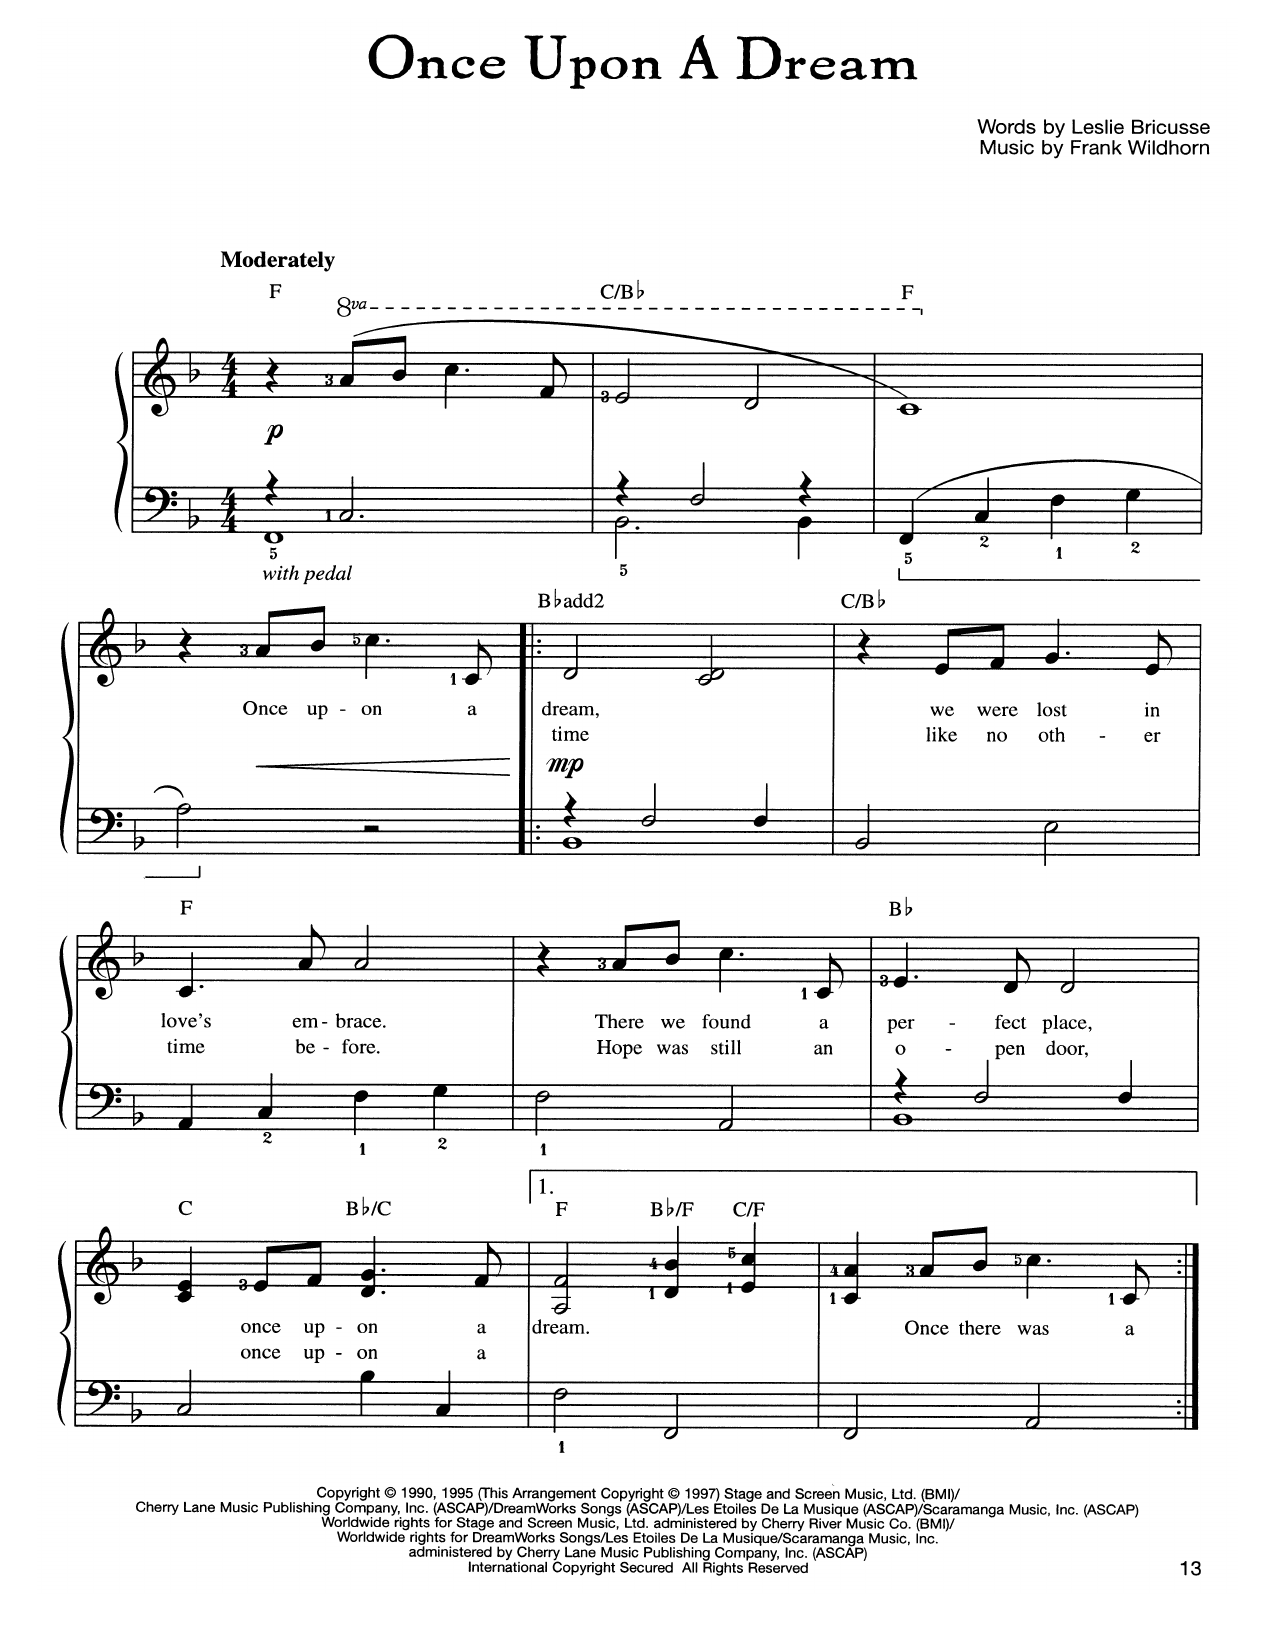 Frank Wildhorn Once Upon A Dream sheet music notes and chords. Download Printable PDF.